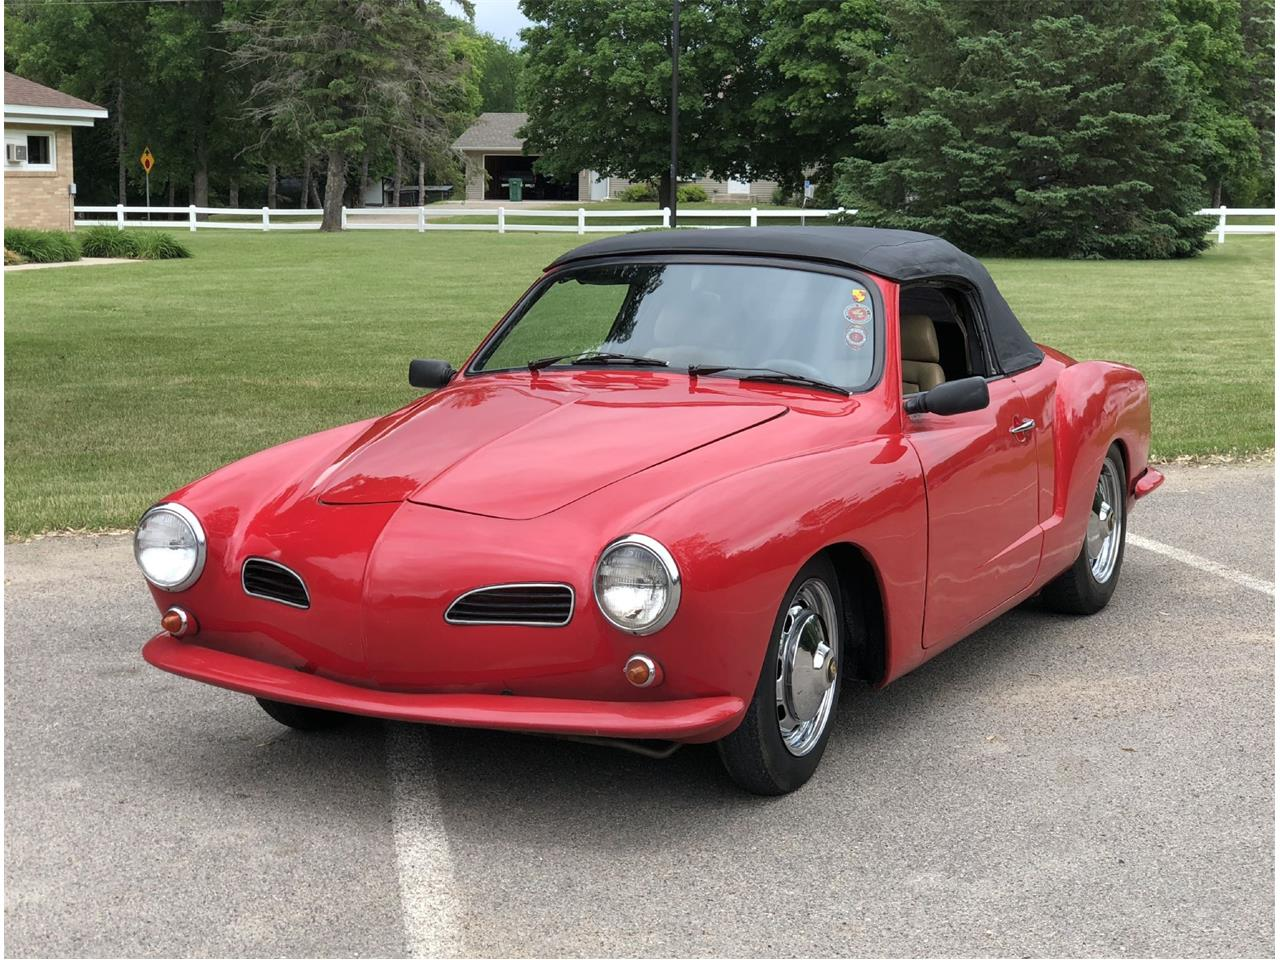 Large Picture of Classic '72 Karmann Ghia - $14,950.00 - NM7V